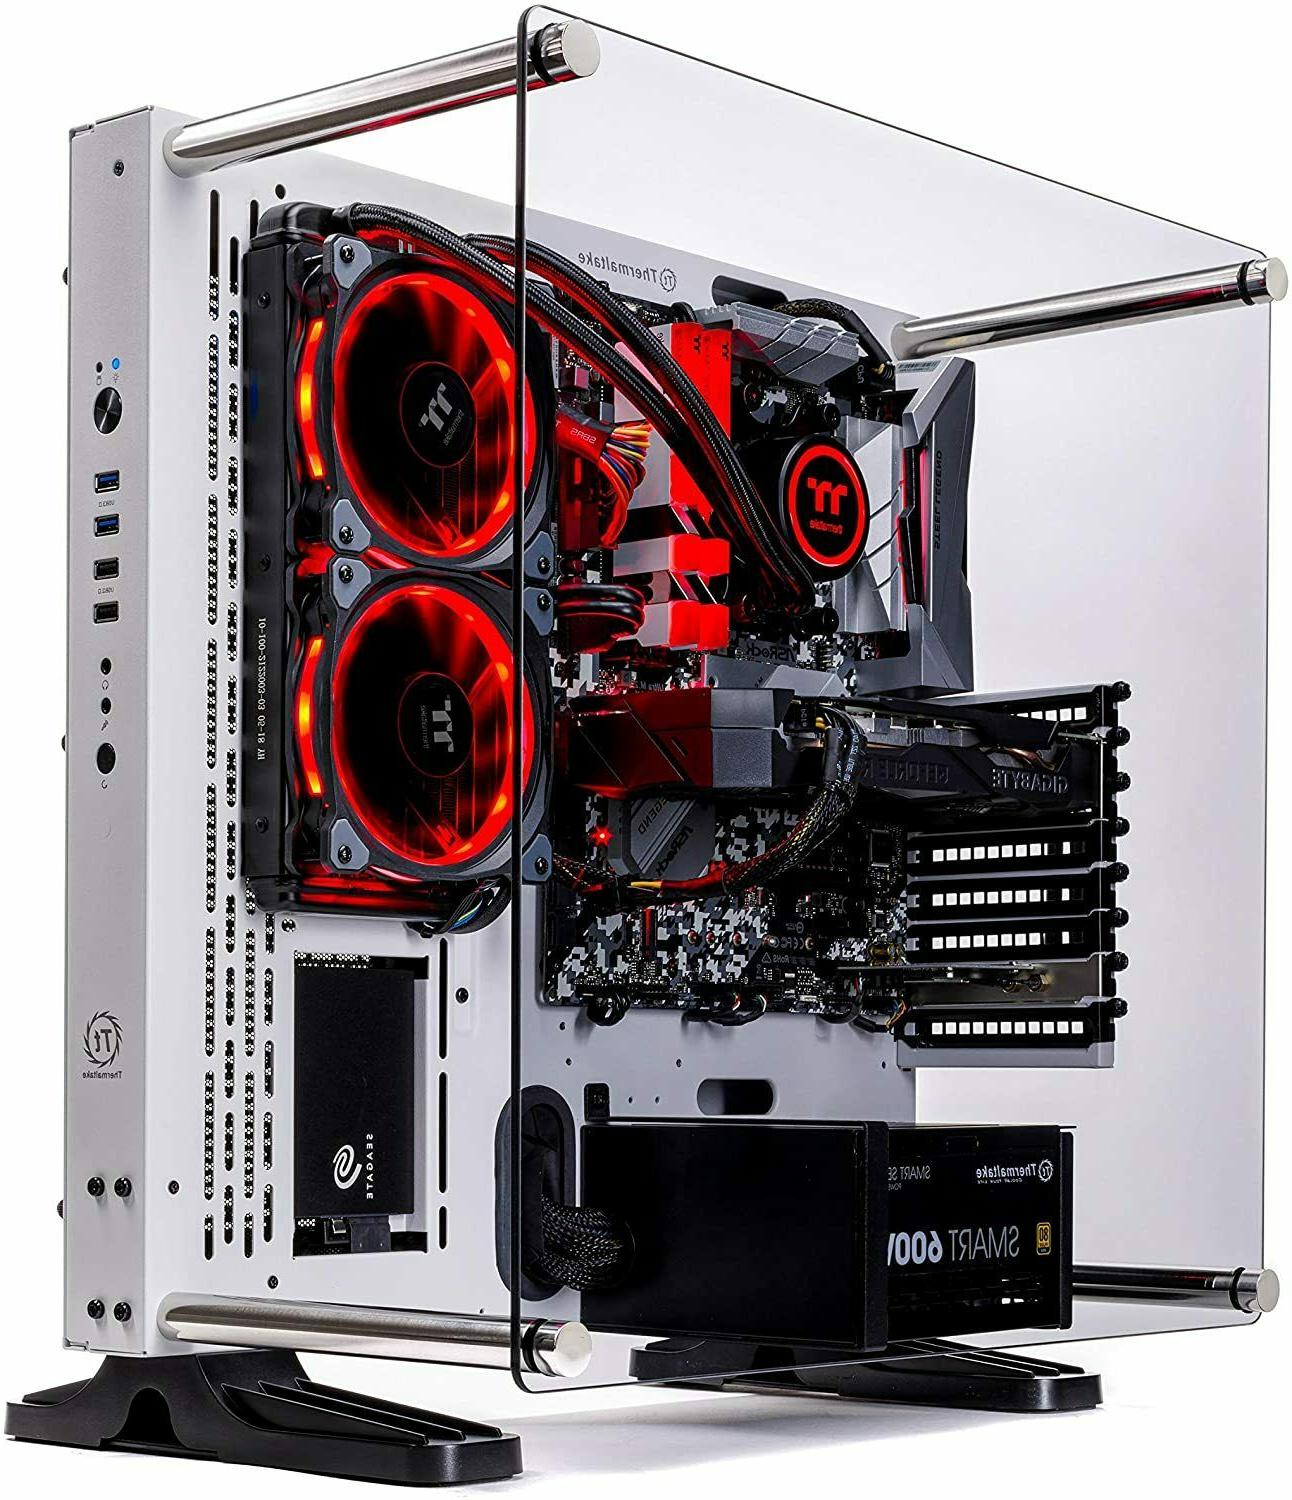 Thermaltake LCGS AIO Cooled Gaming 5 3600